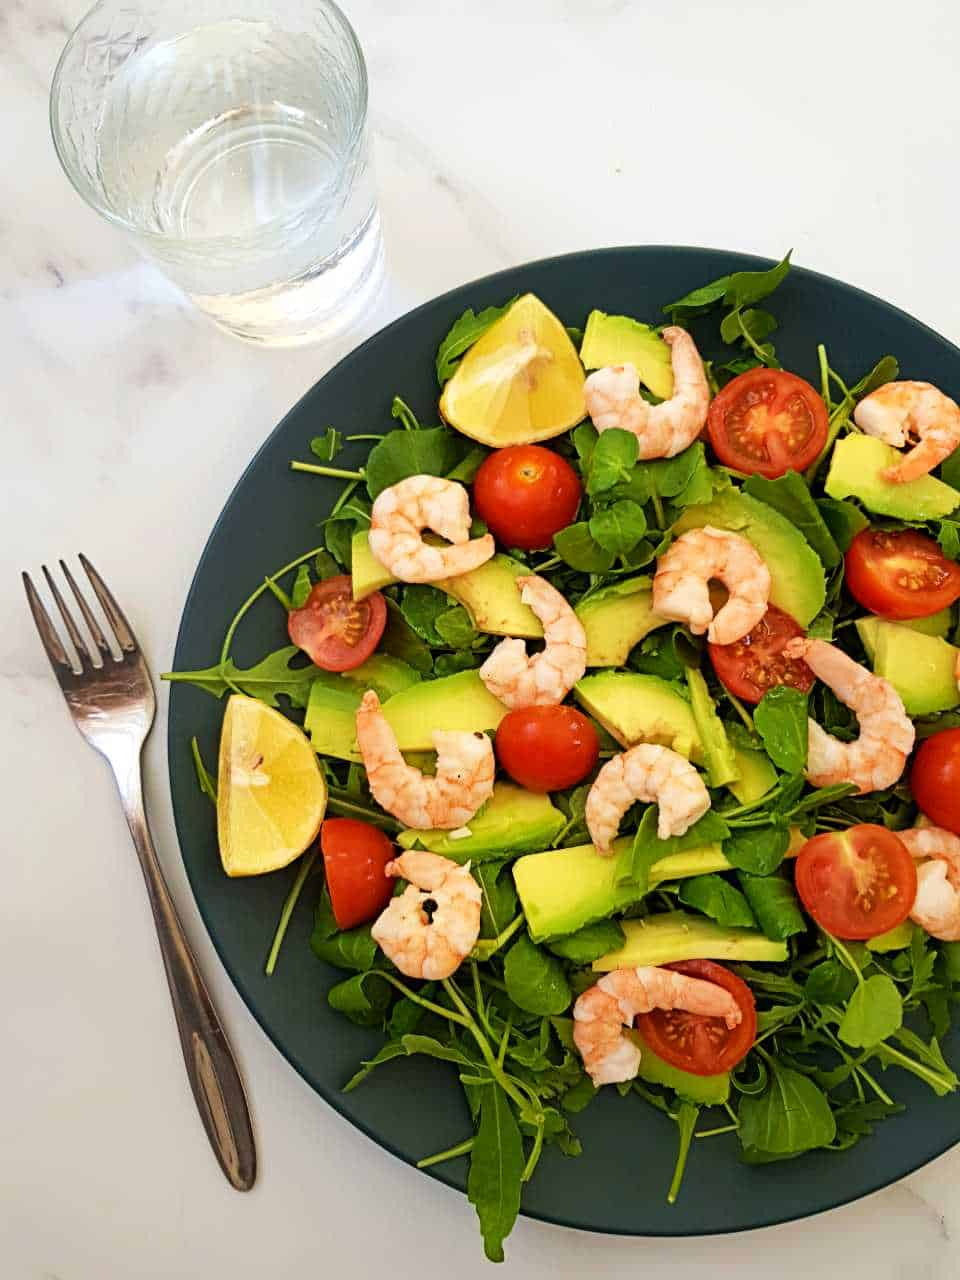 Prawn and avocado salad on a blue plate on a marble table.